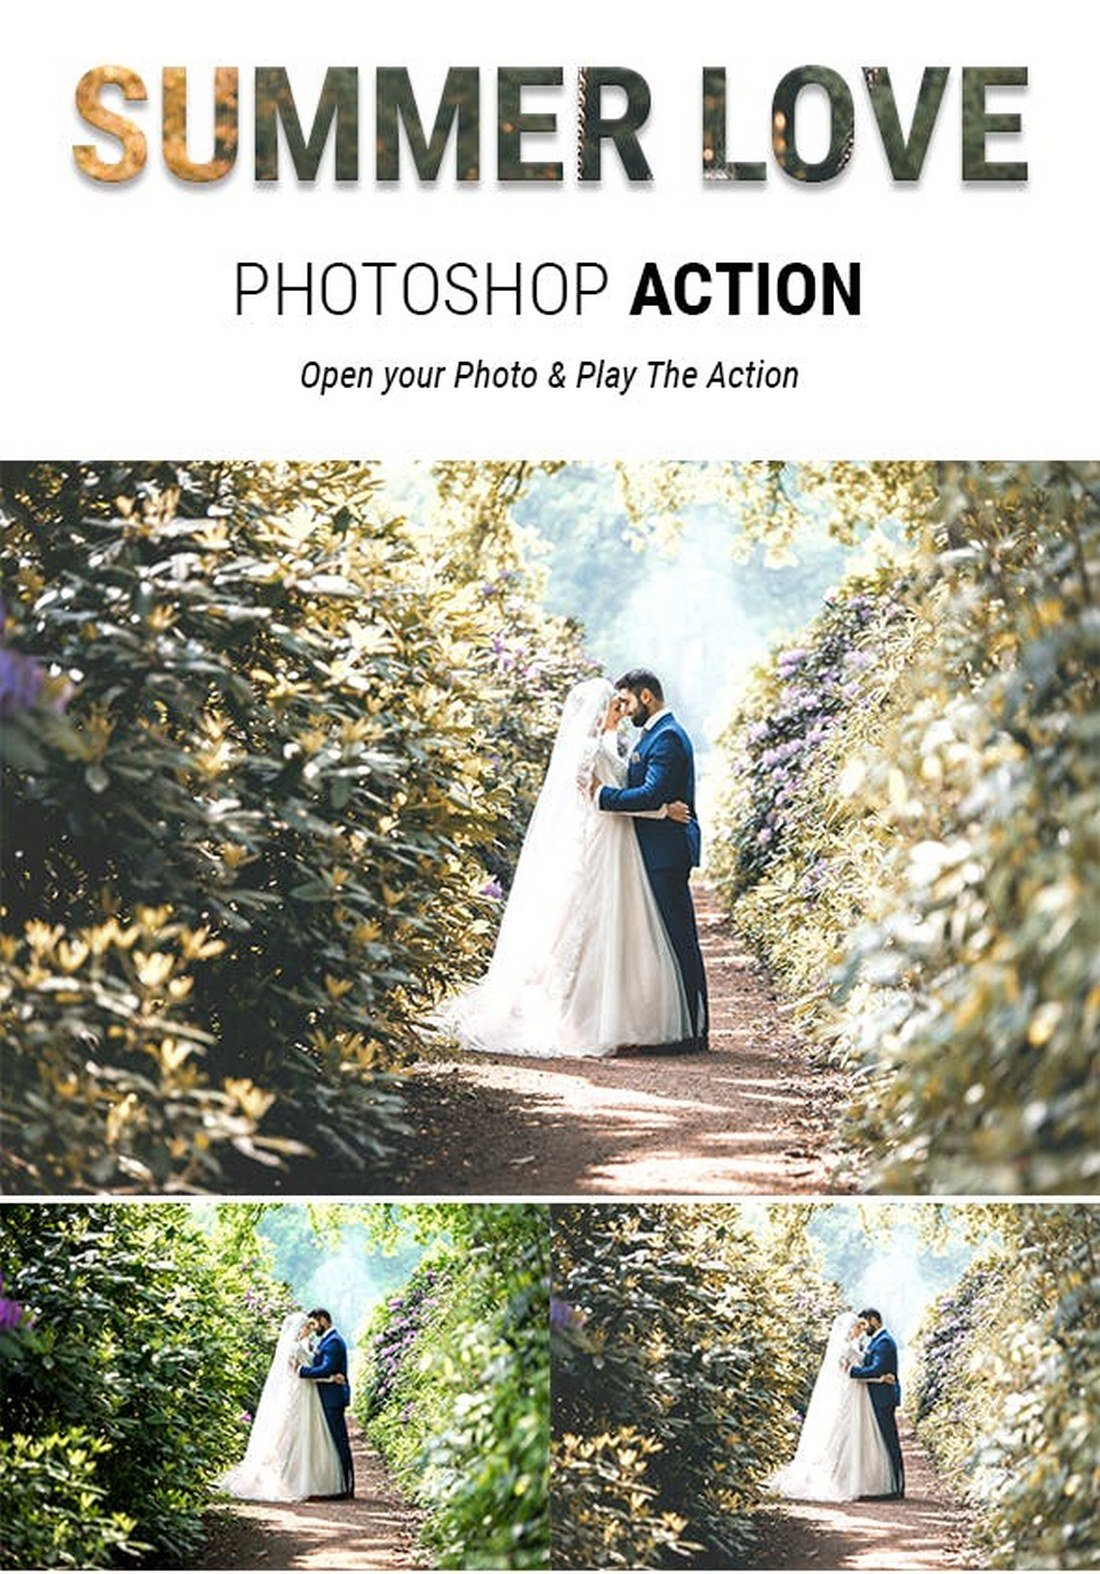 Summer Love - Mariage Photoshop Actions Photoshop